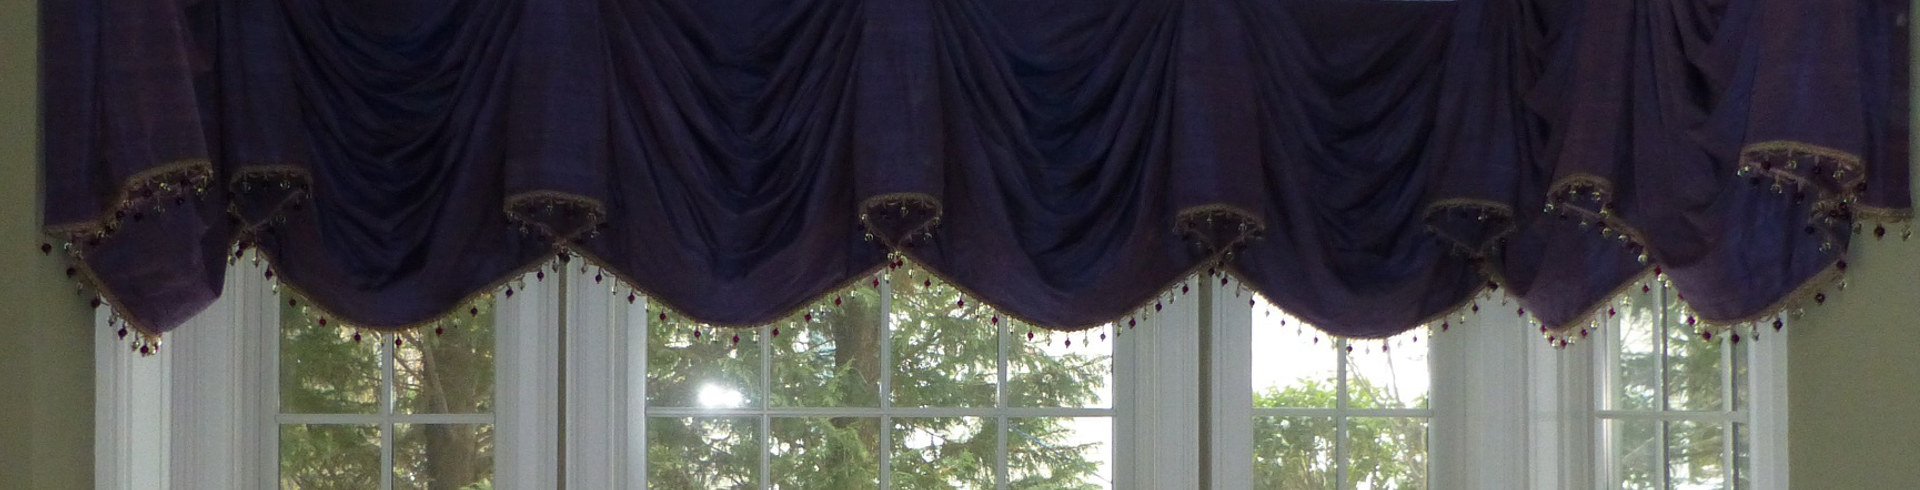 window custom made furniture valance scheffdesigns valances overview coverings services and treatments